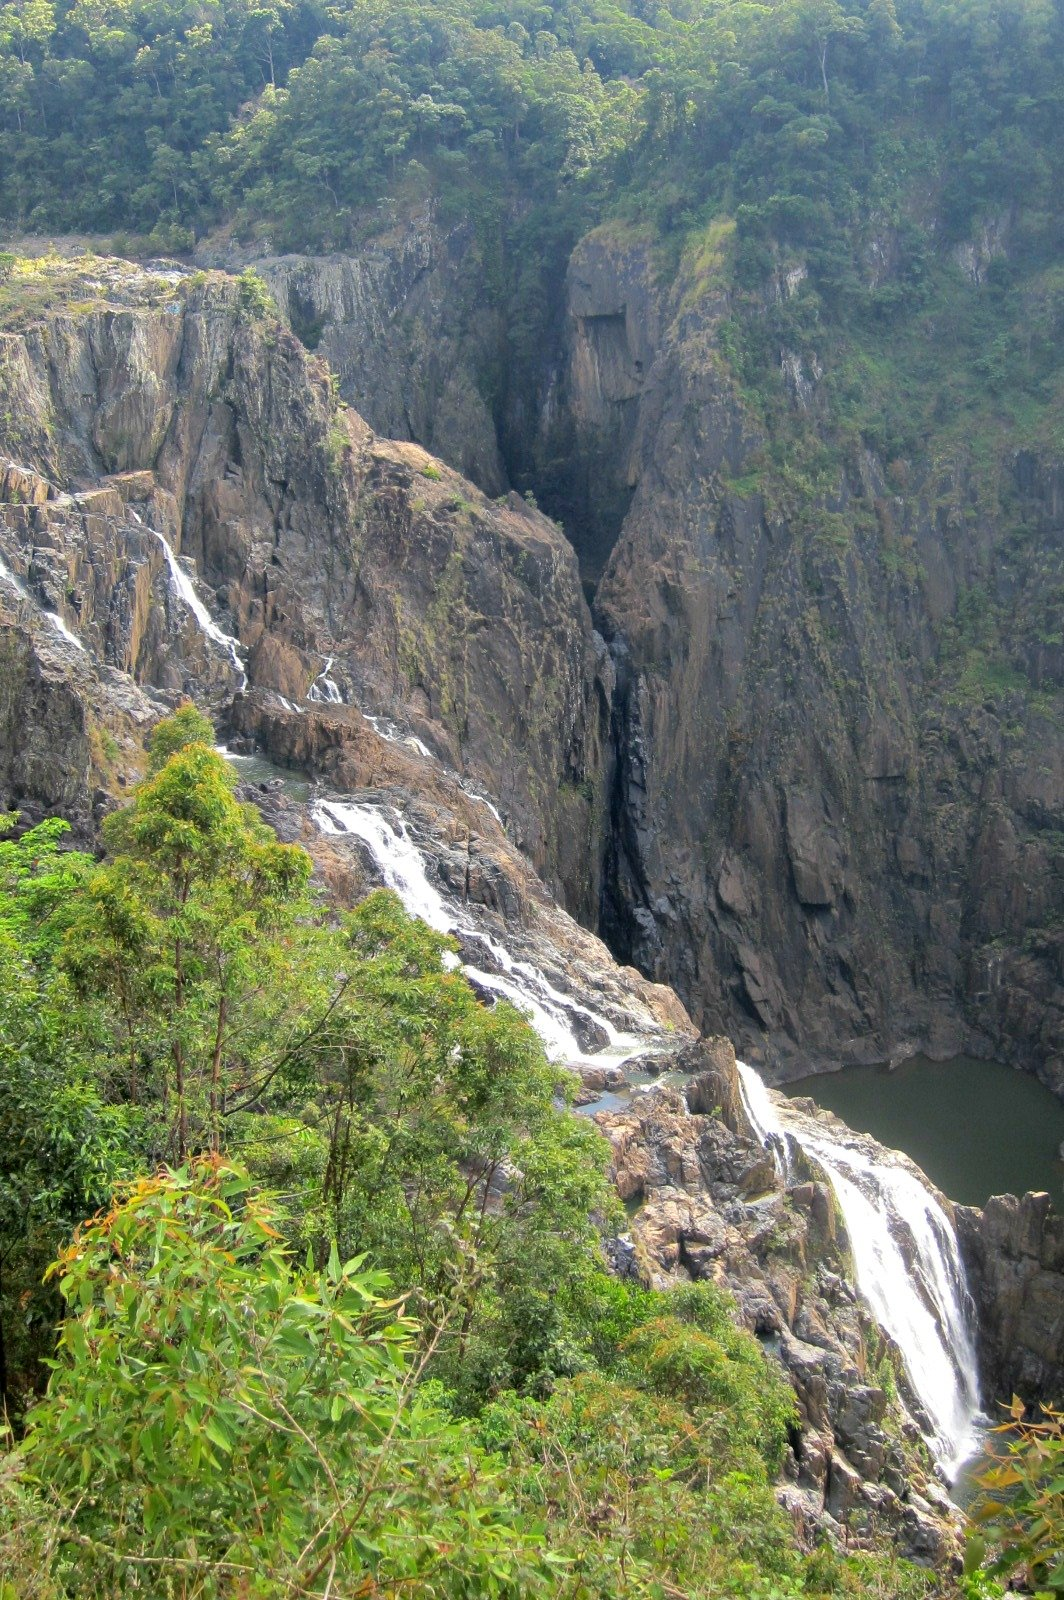 A section of the Barron Falls